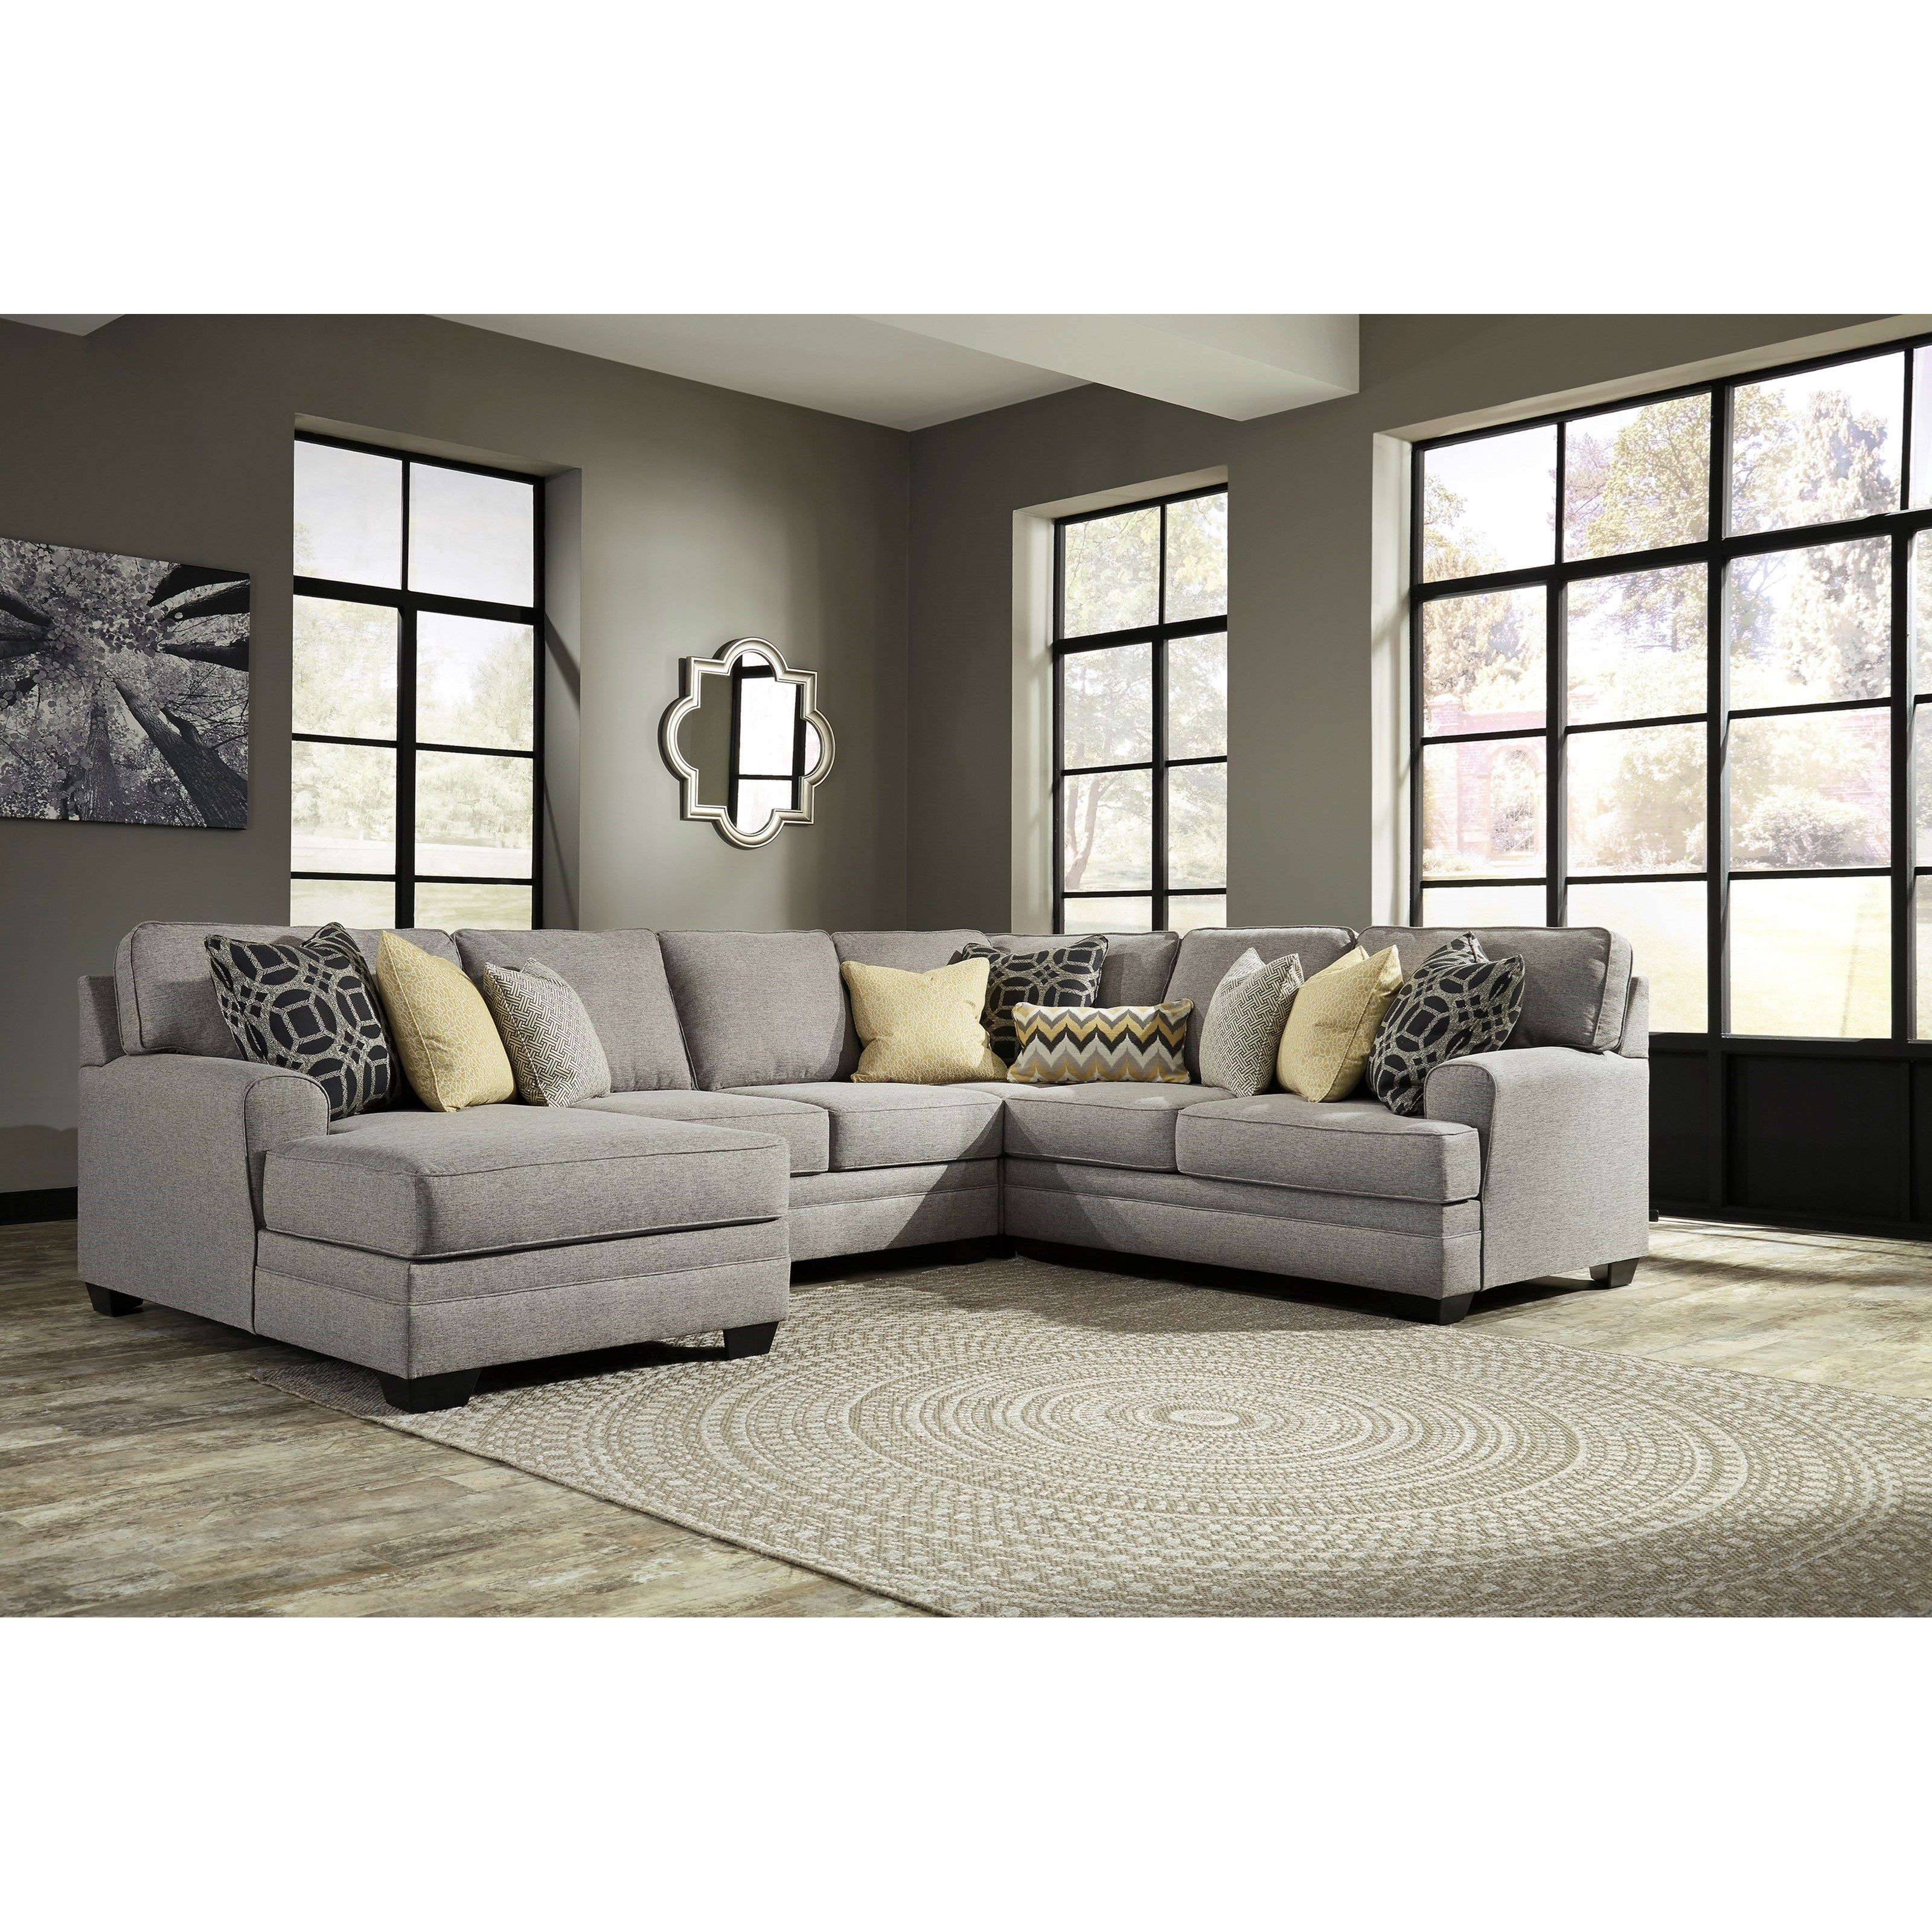 Cresson Contemporary 4 Piece Sectional With Chaise By Benchcraft